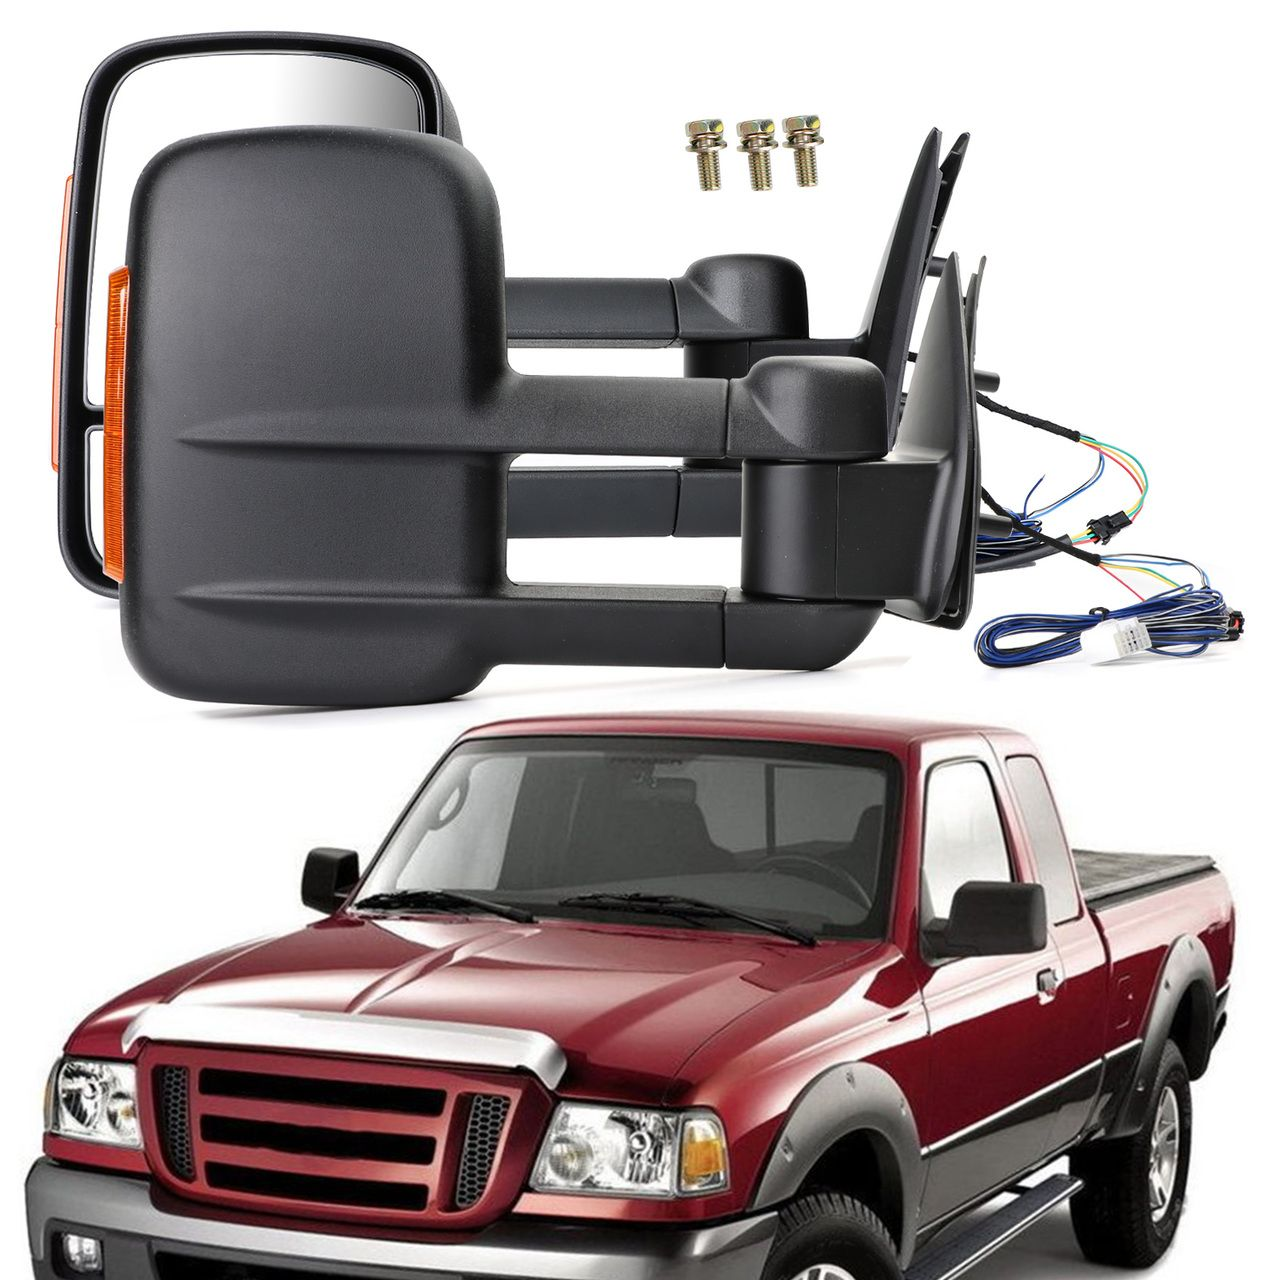 Mad Hornets Extendable Towing Mirrors For Ford Ranger 09 11 Pair Black 390 99 Http Www Madhornets Com Extendable Towin Ford Ranger Ranger Towing Mirrors